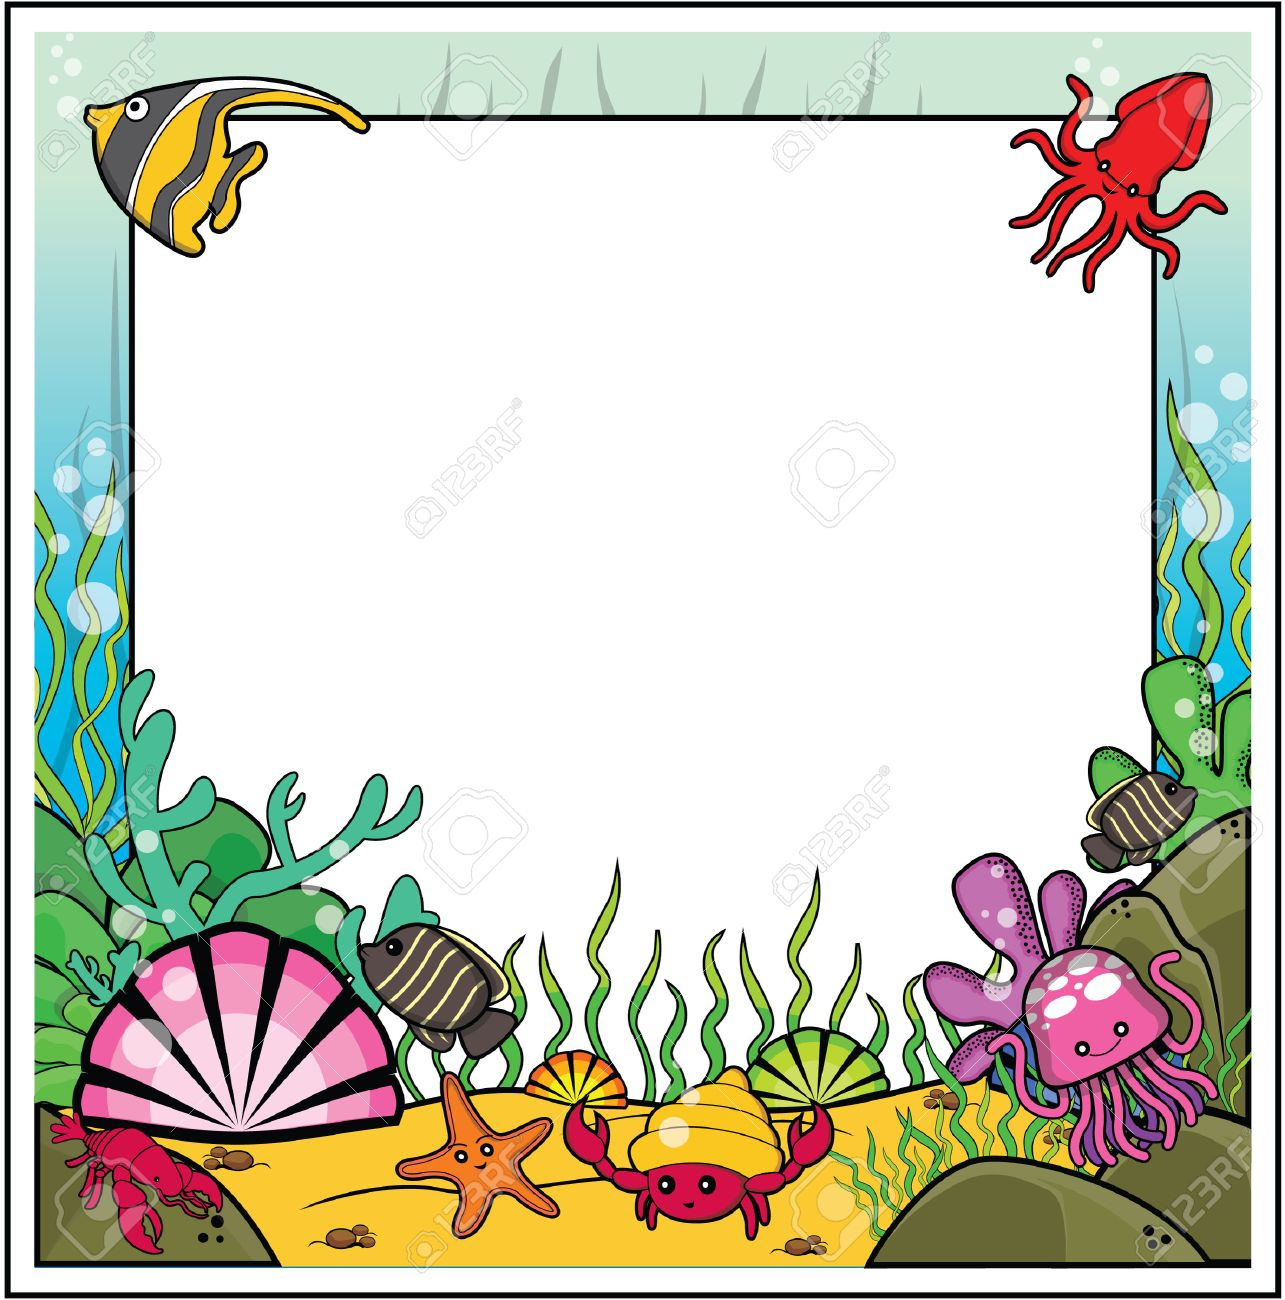 Under The Sea Frame Clipart.